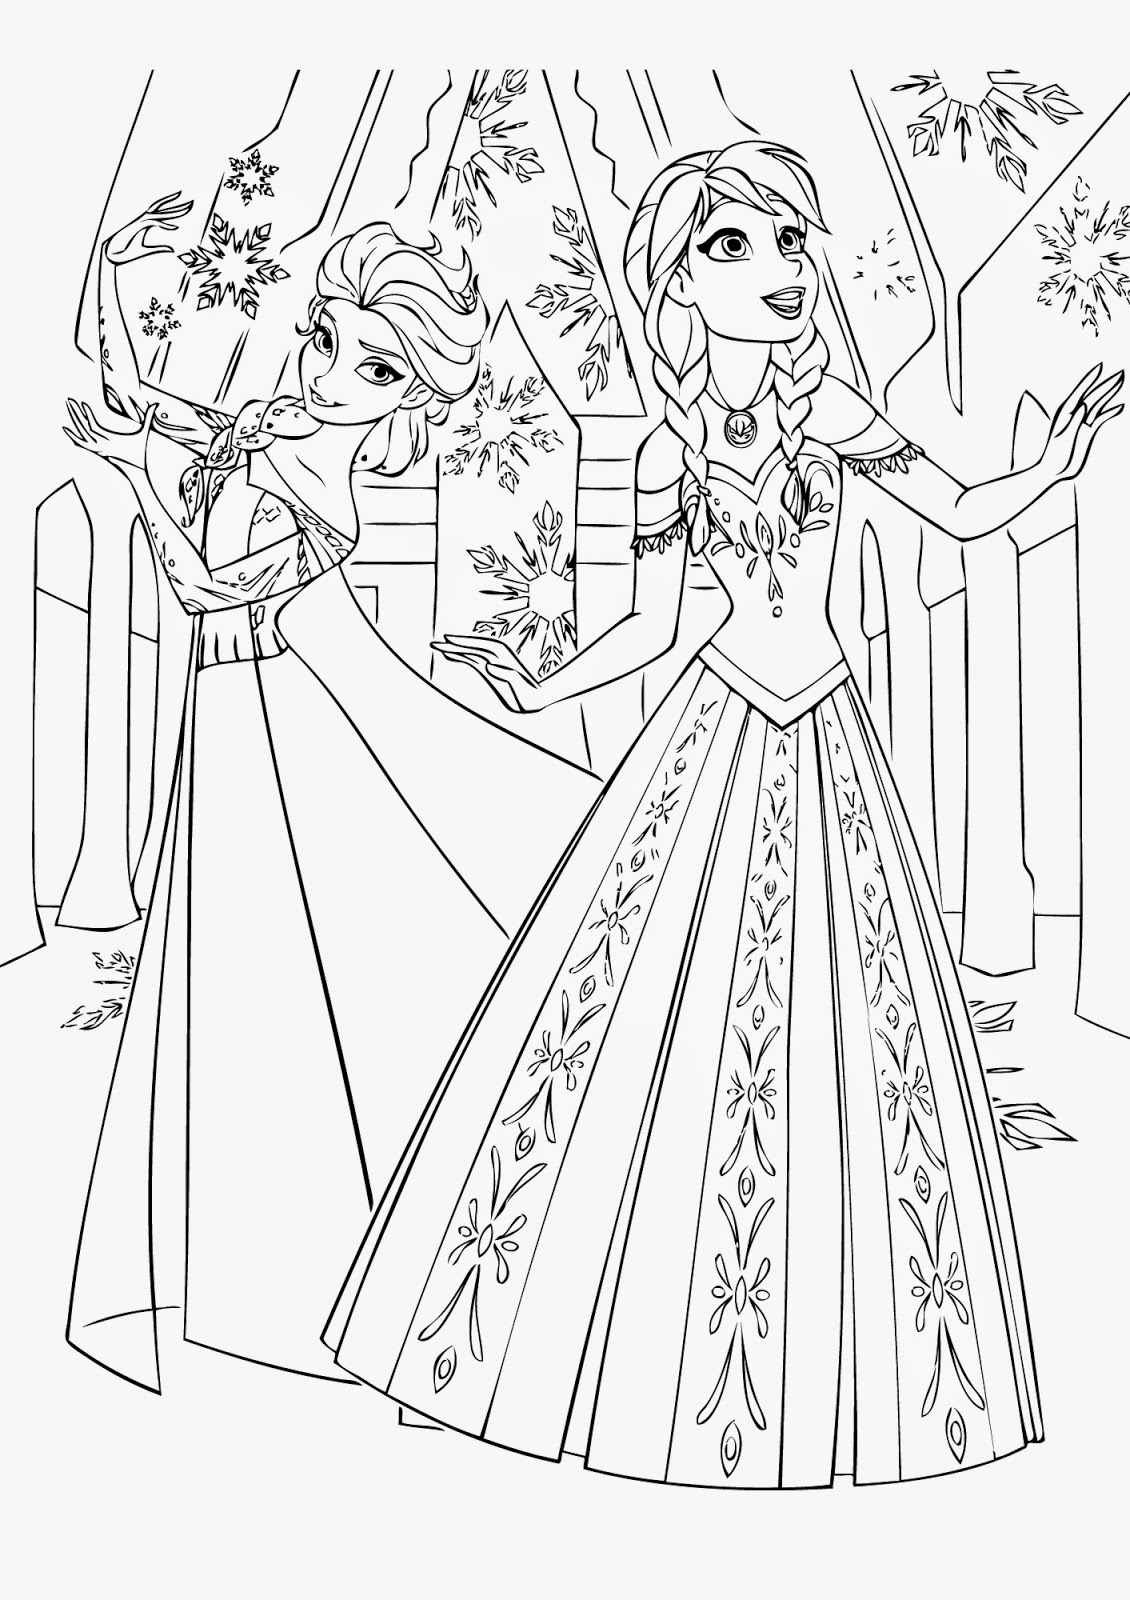 frozen colouring in sheets find 16 awesome frozen coloring pages to print instant sheets in frozen colouring